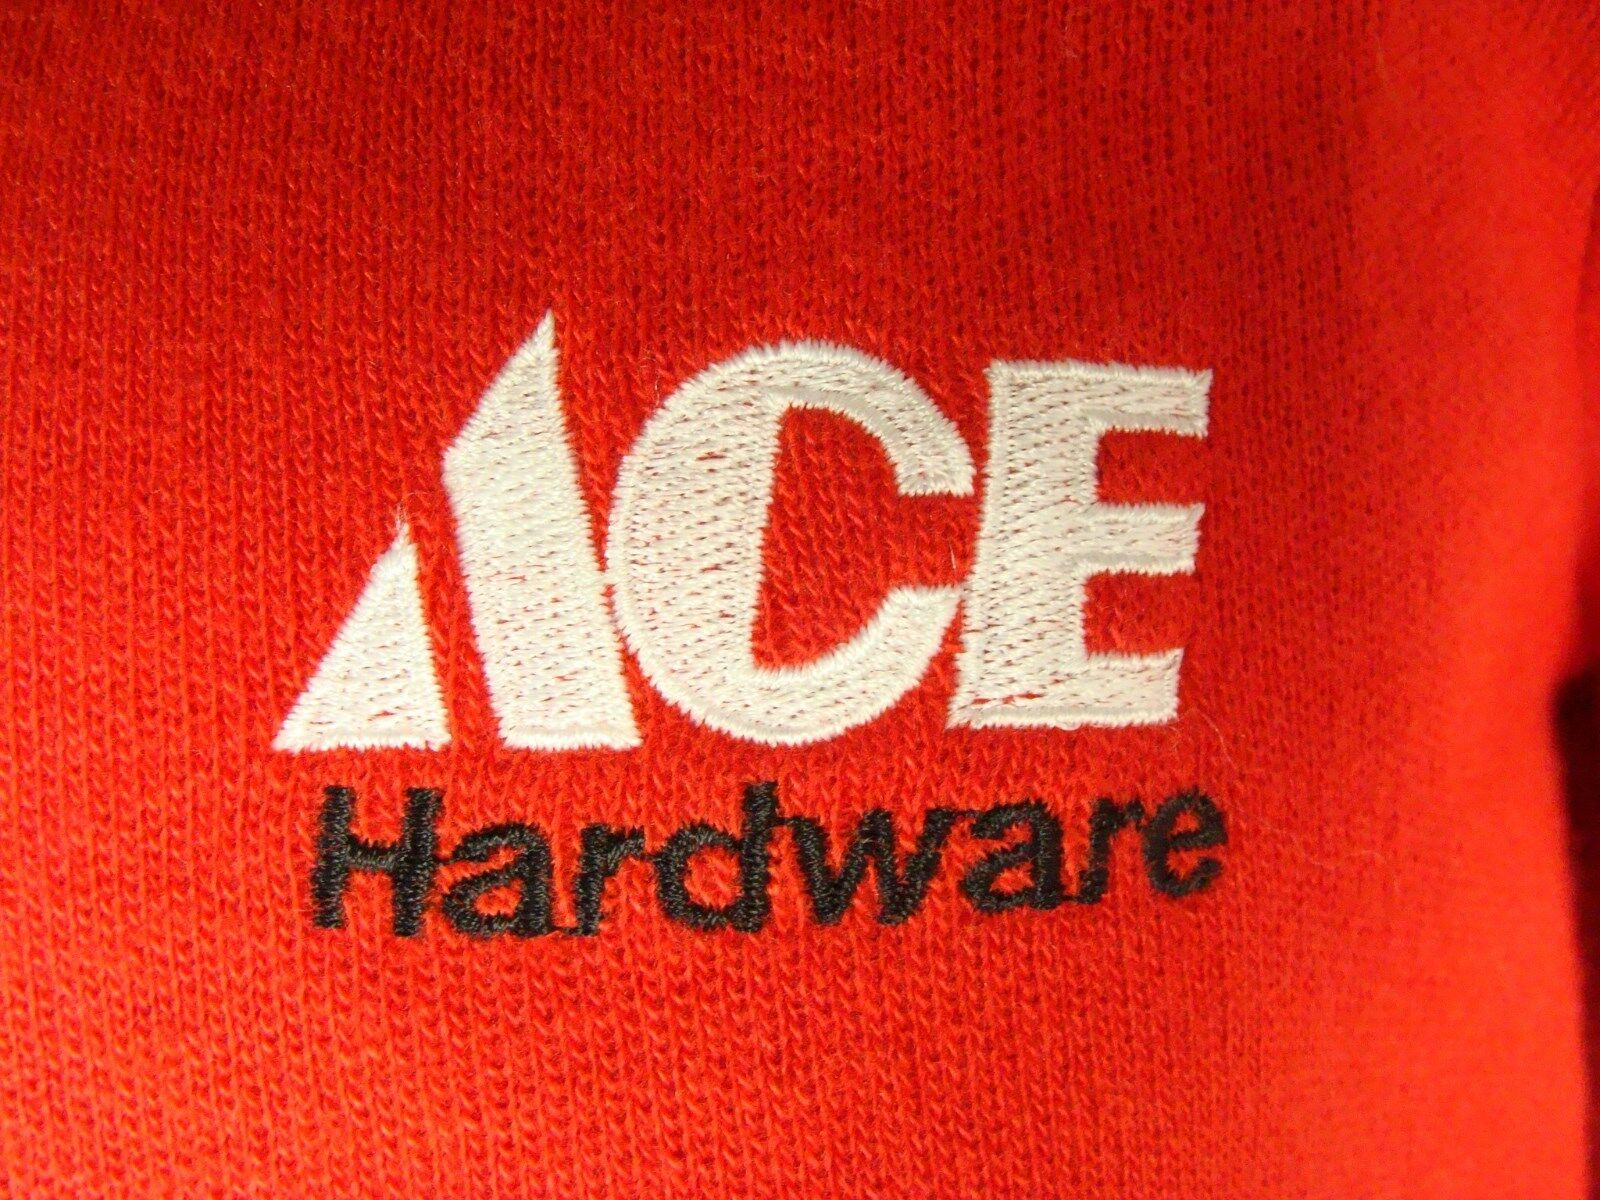 Vintage ACE Hardware 1970s Sweater Small